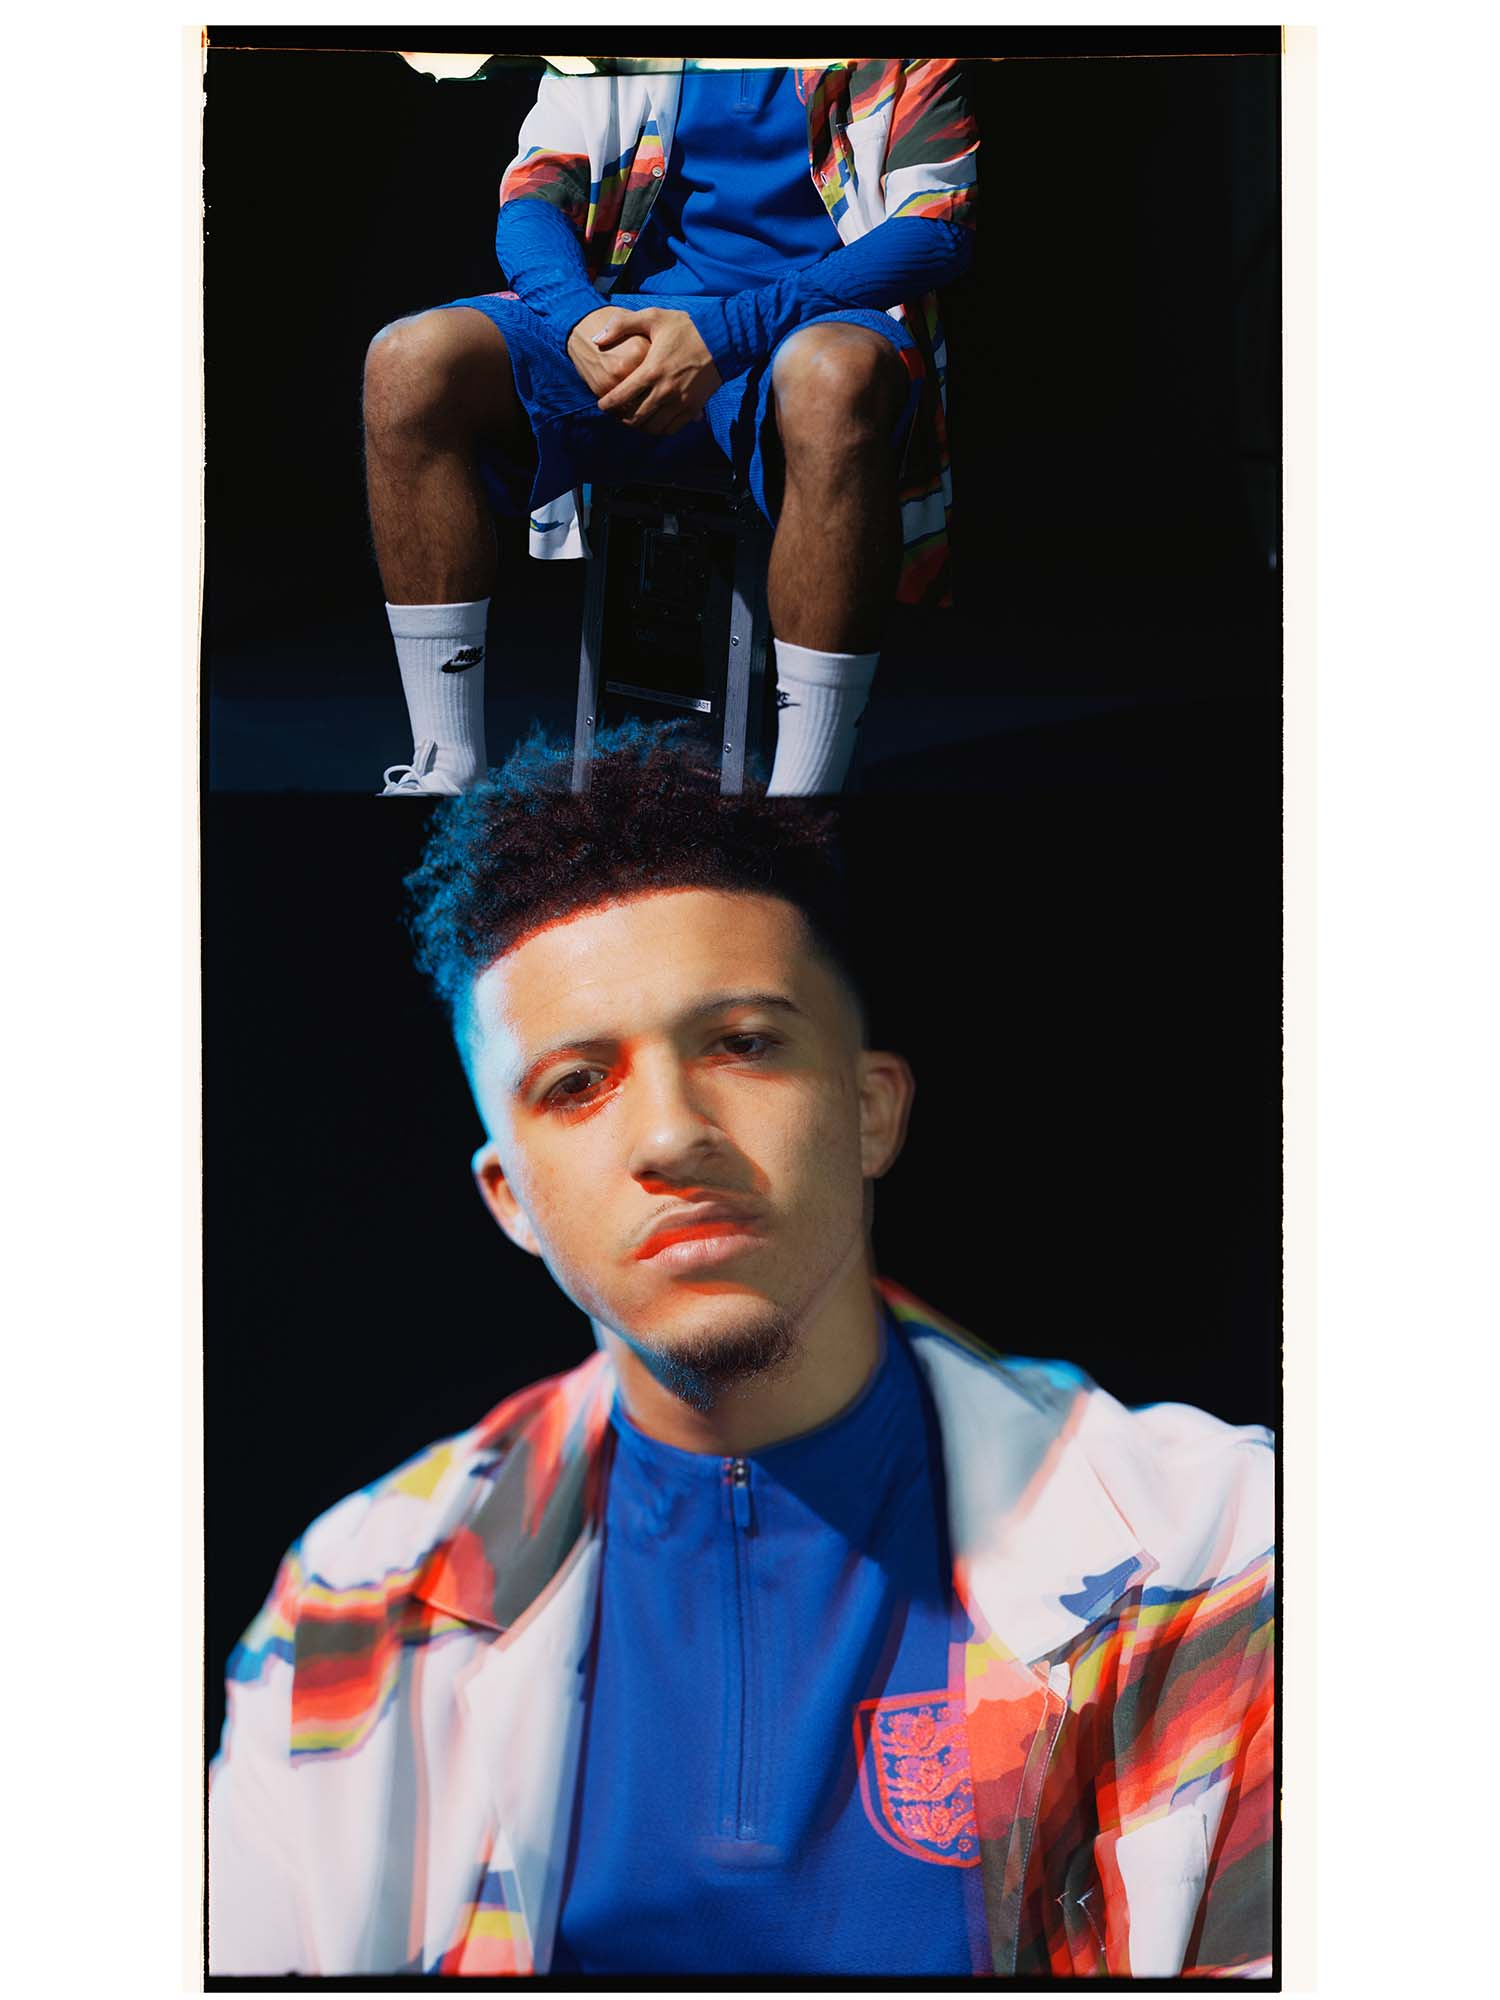 jadon sancho soccerbible interview england portrait_0005_jph180820_ 003.jpg